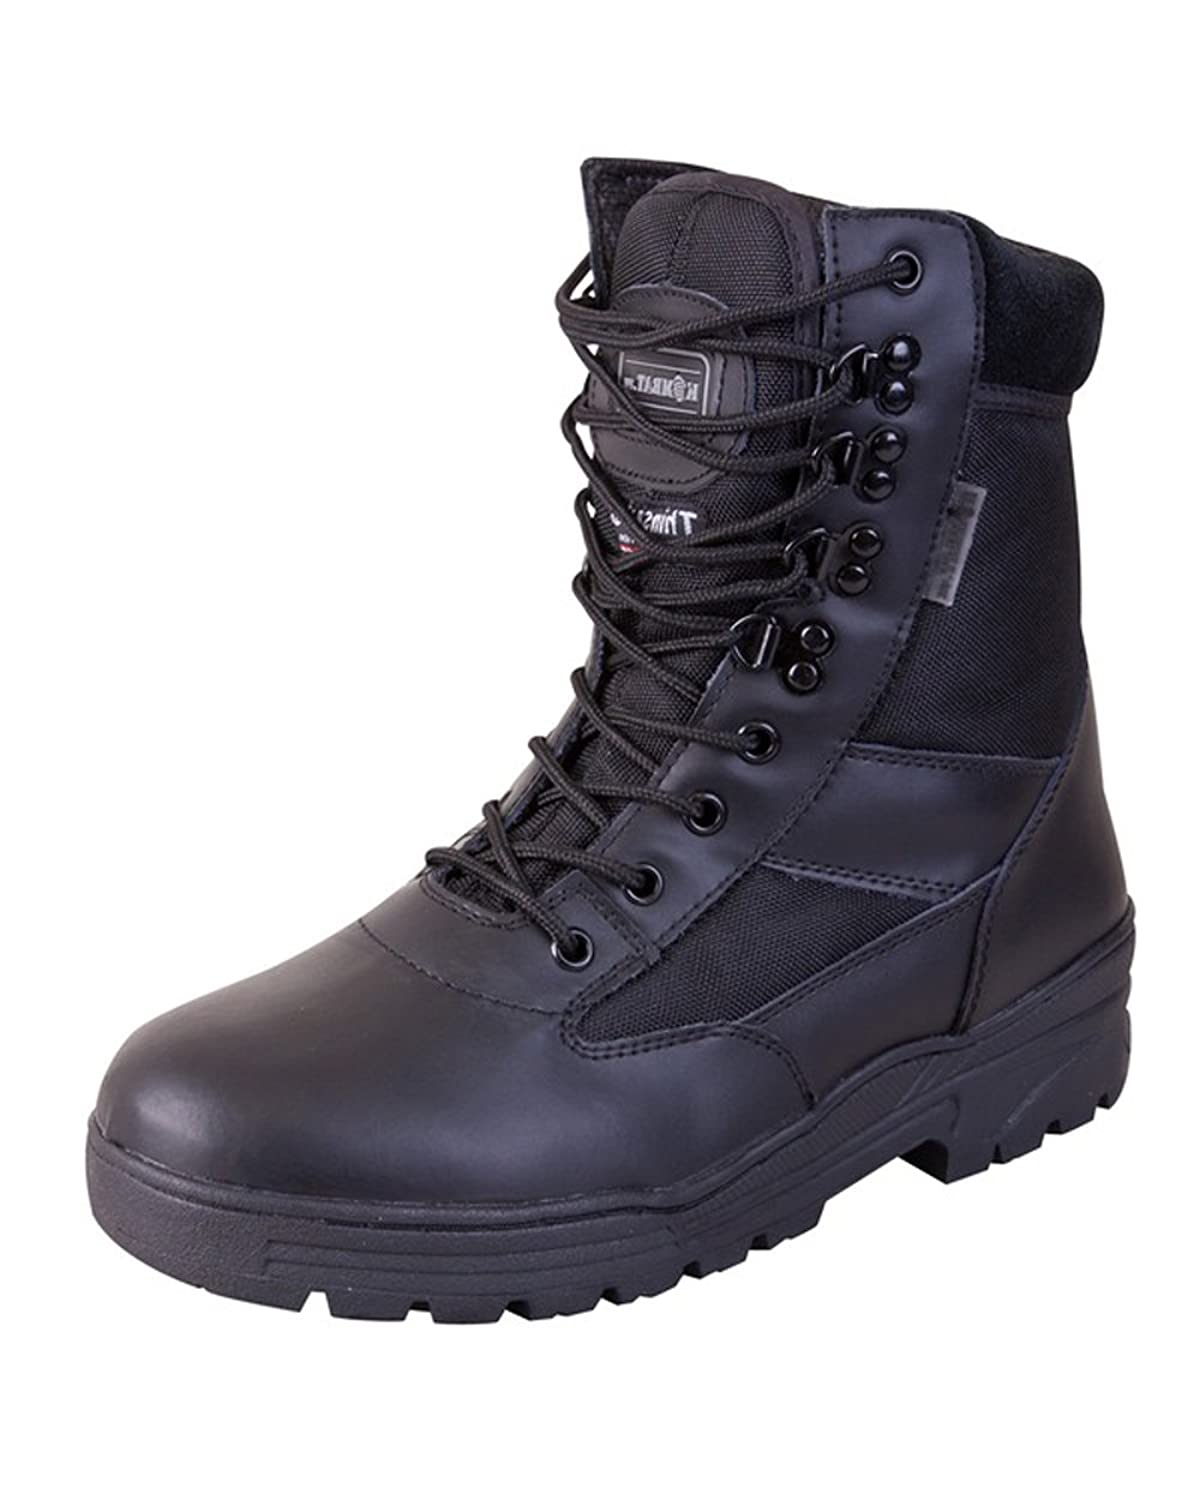 Mens Combat Military Black Army Patrol Hiking Cadet Work High Leather Boot  All Sizes UK 3